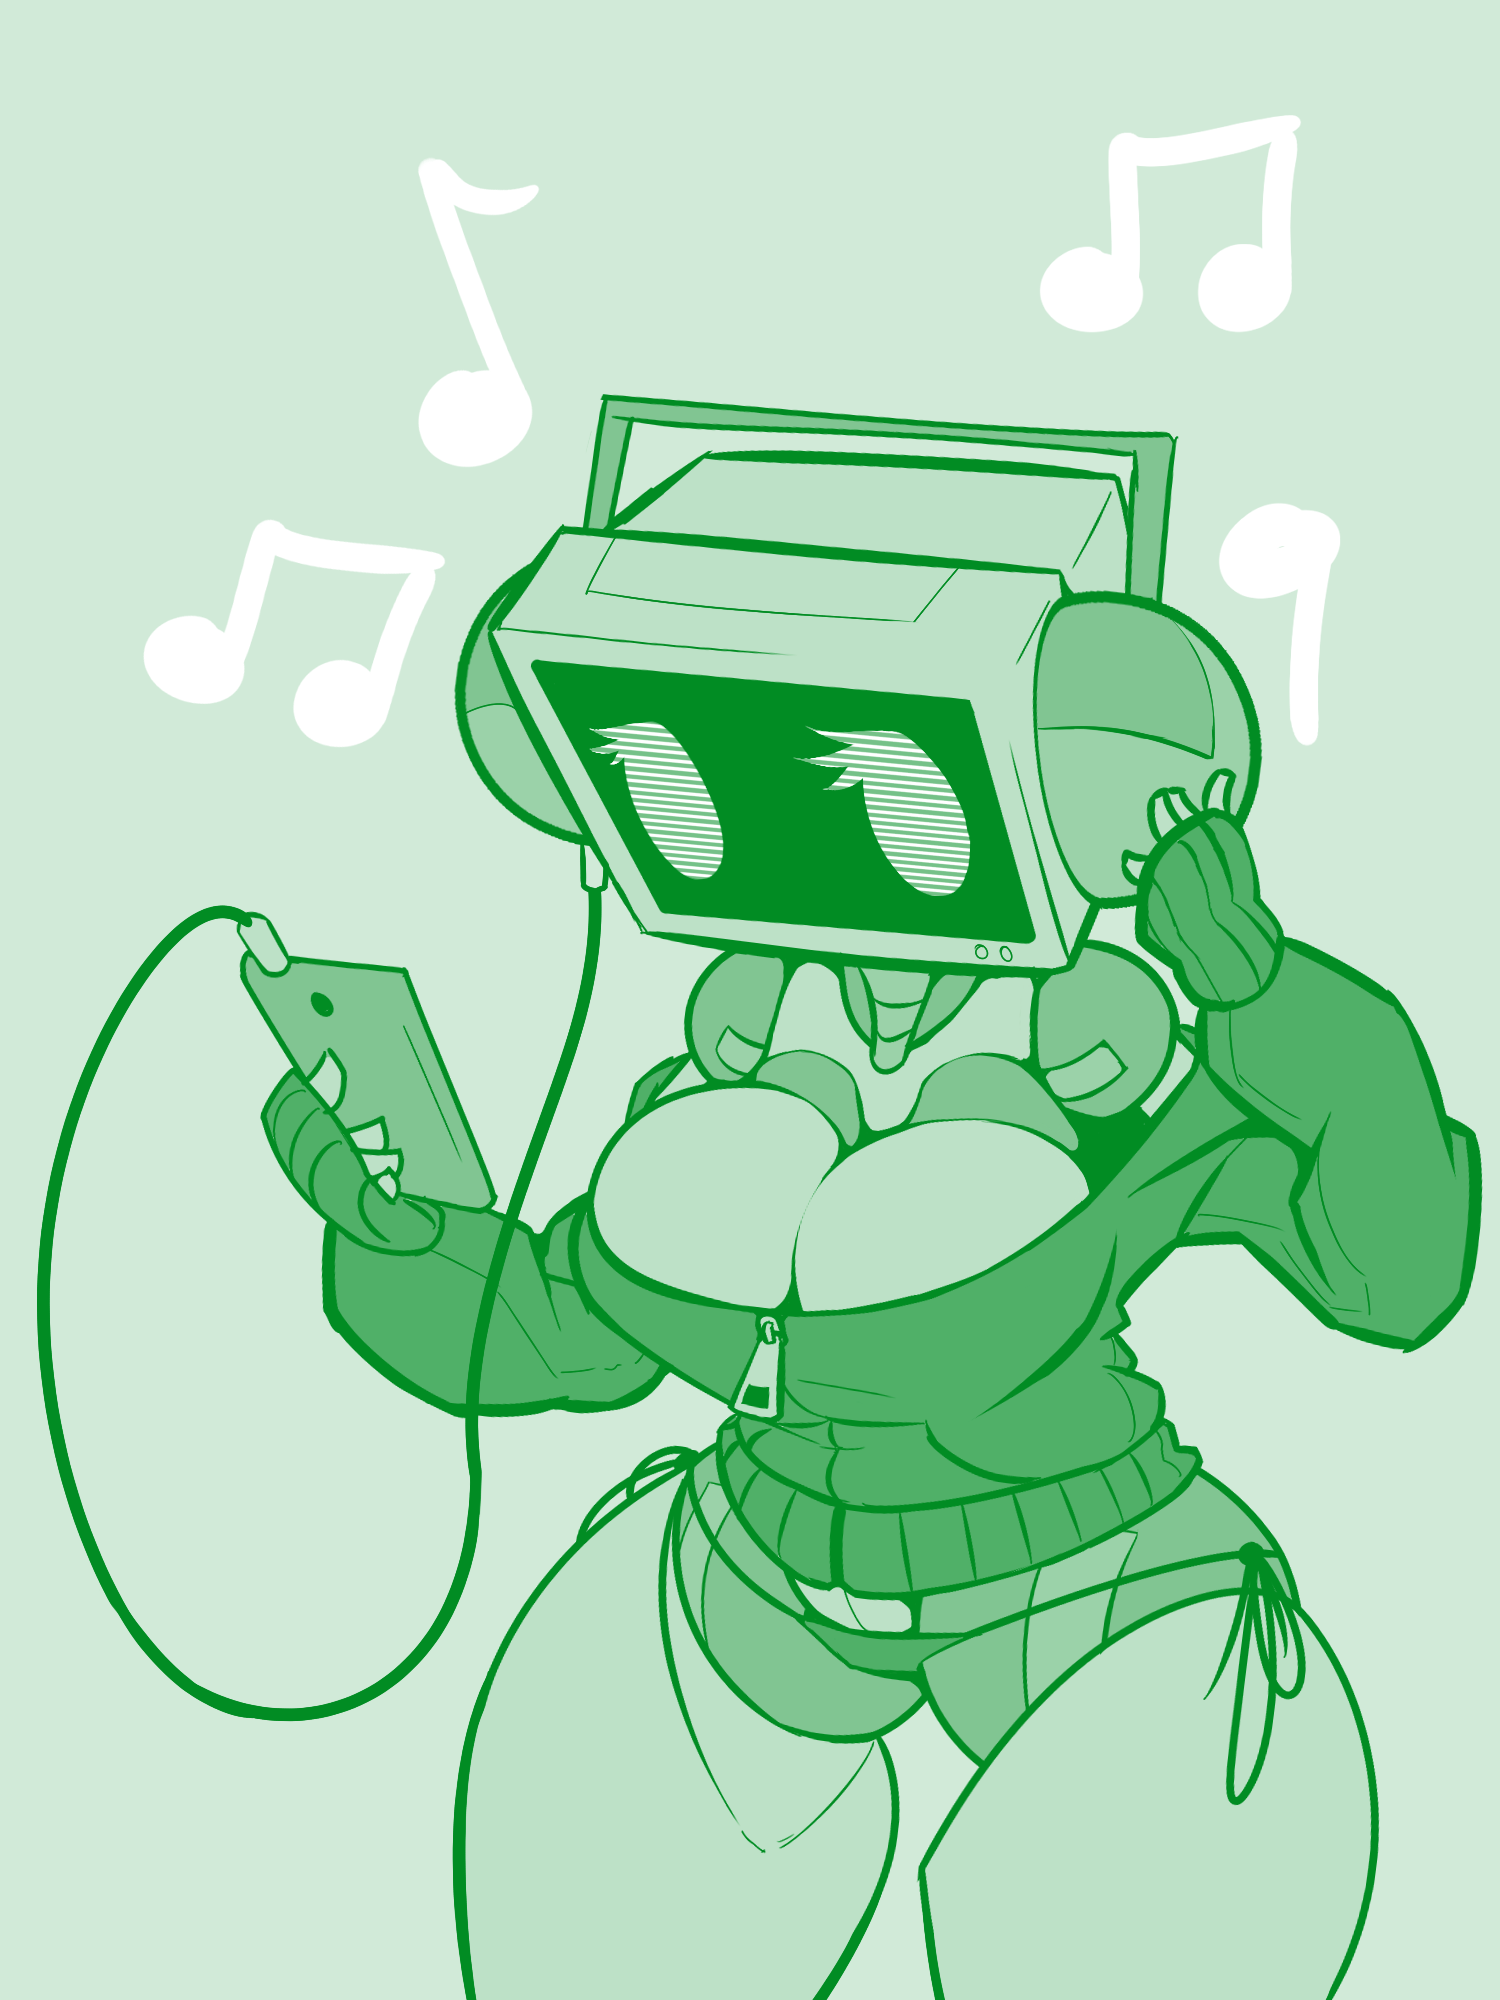 Old Draw: LimeBot.EXE